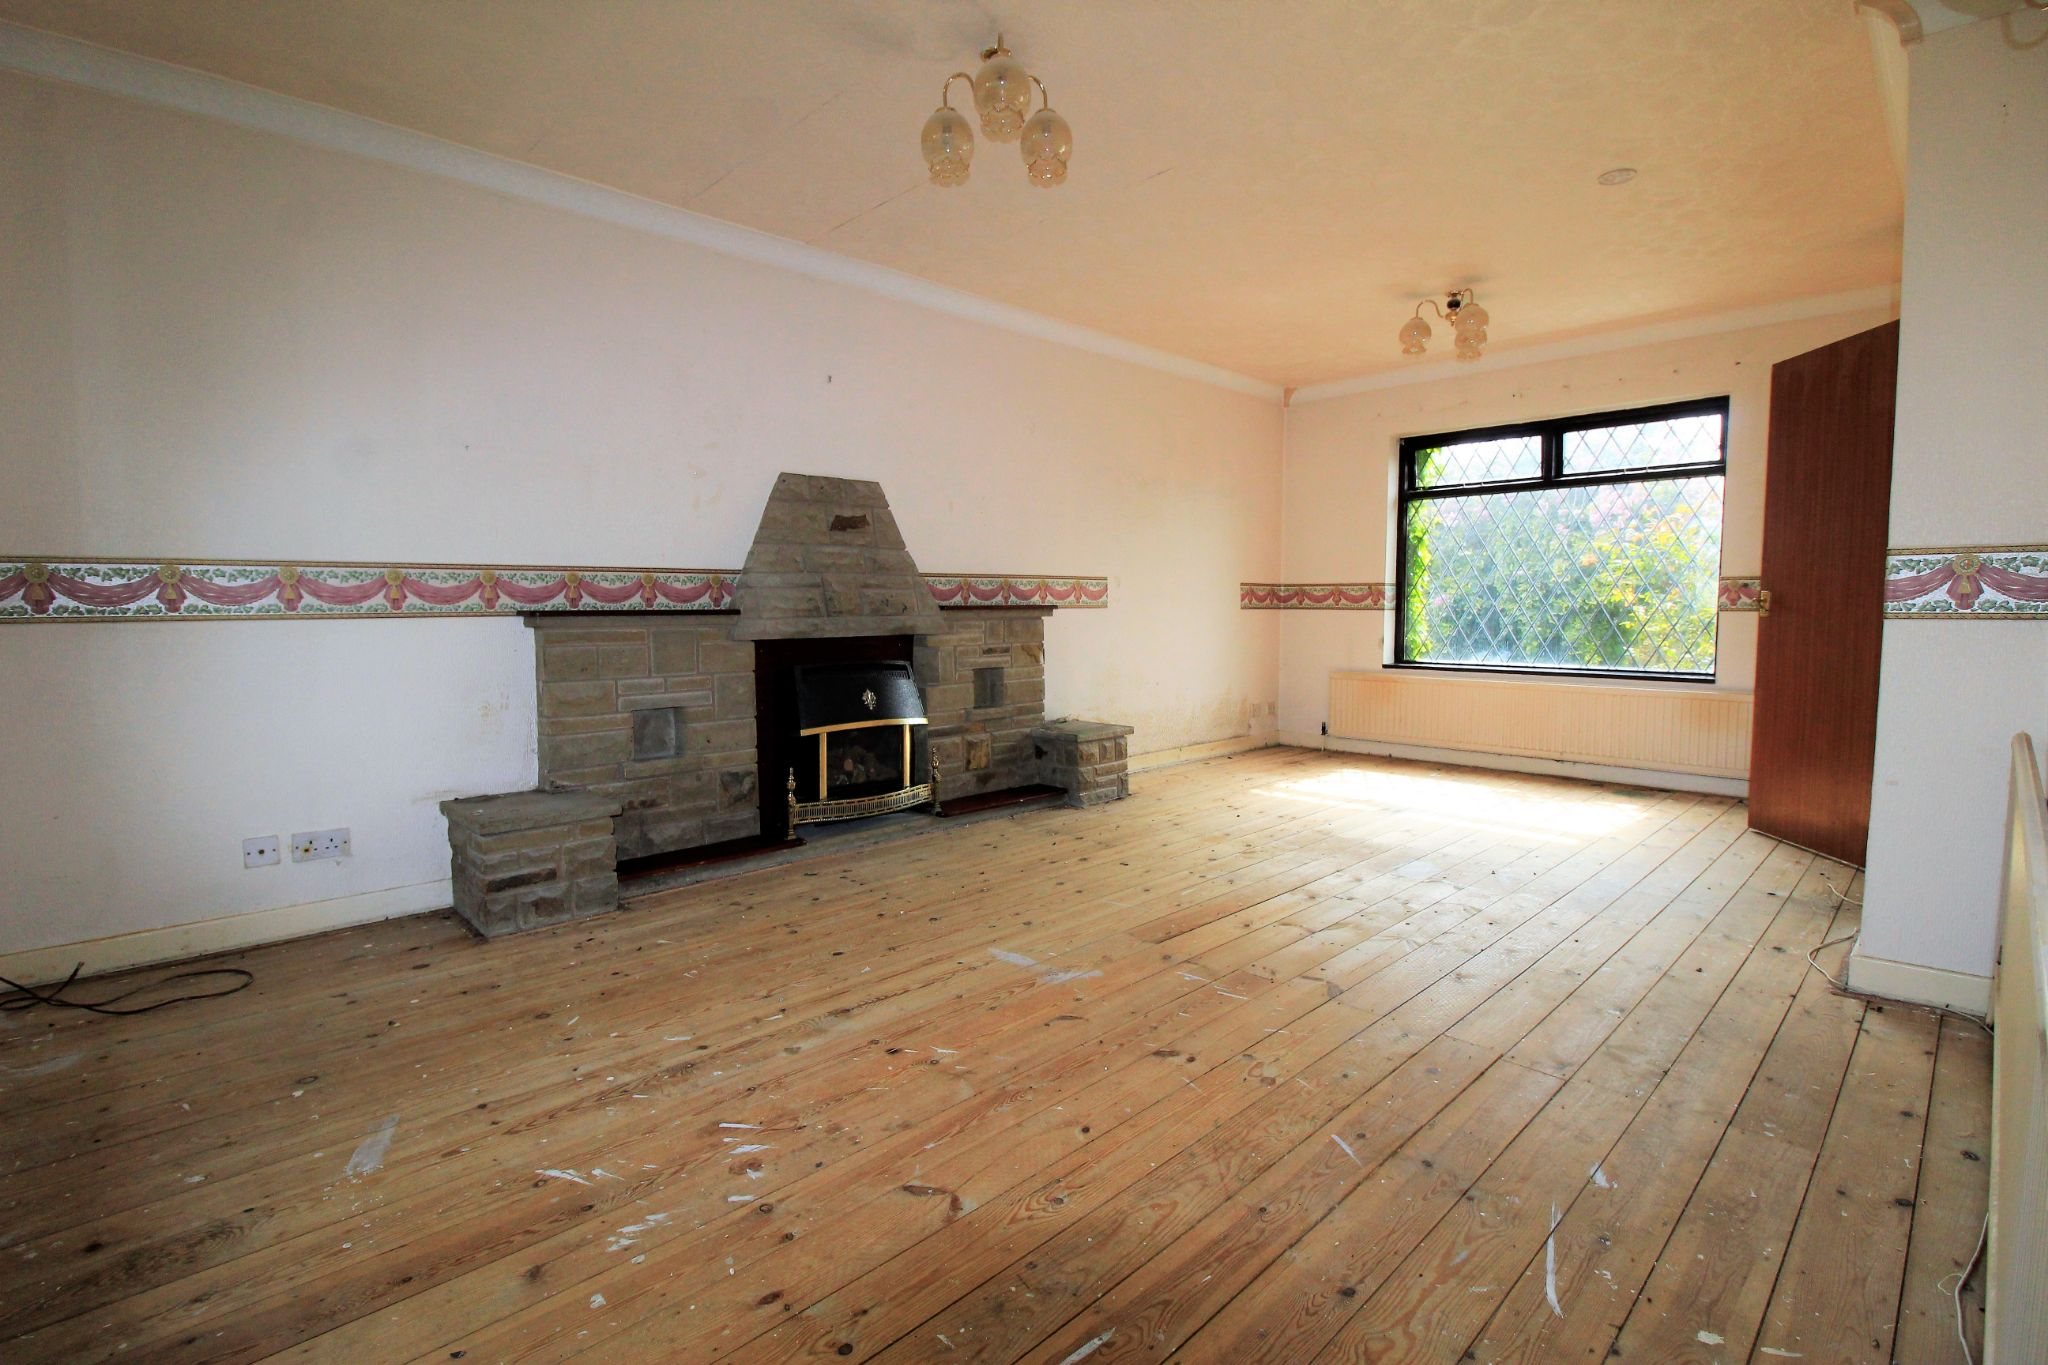 3 bedroom detached bungalow SSTC in Bradford - Lounge